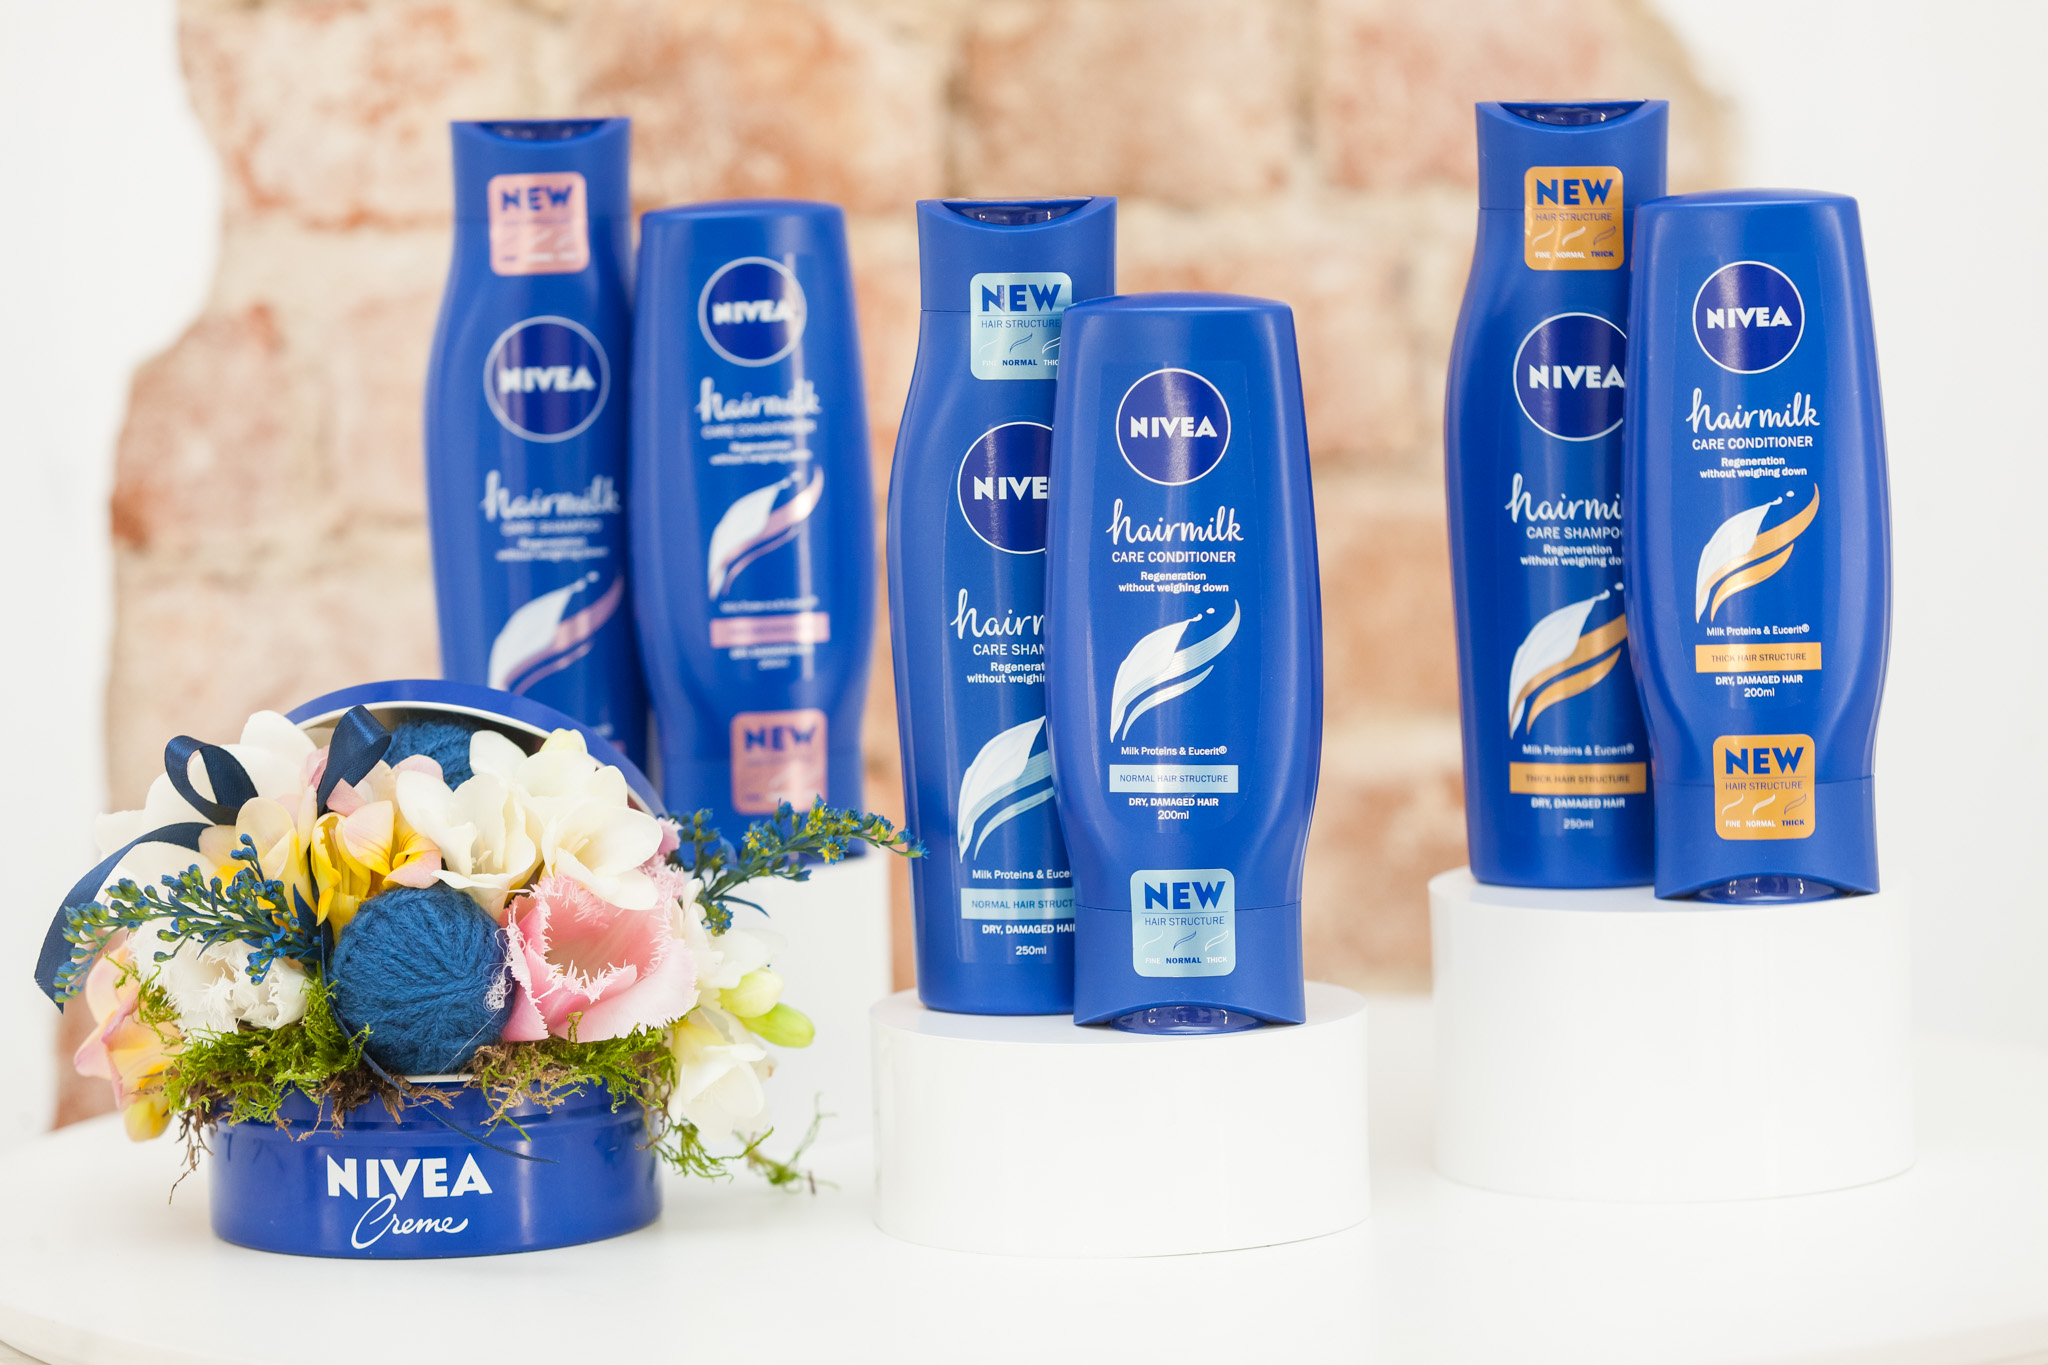 Nivea & FCB Bucharest launch campaign including Pop-Up Hair Salon for new product